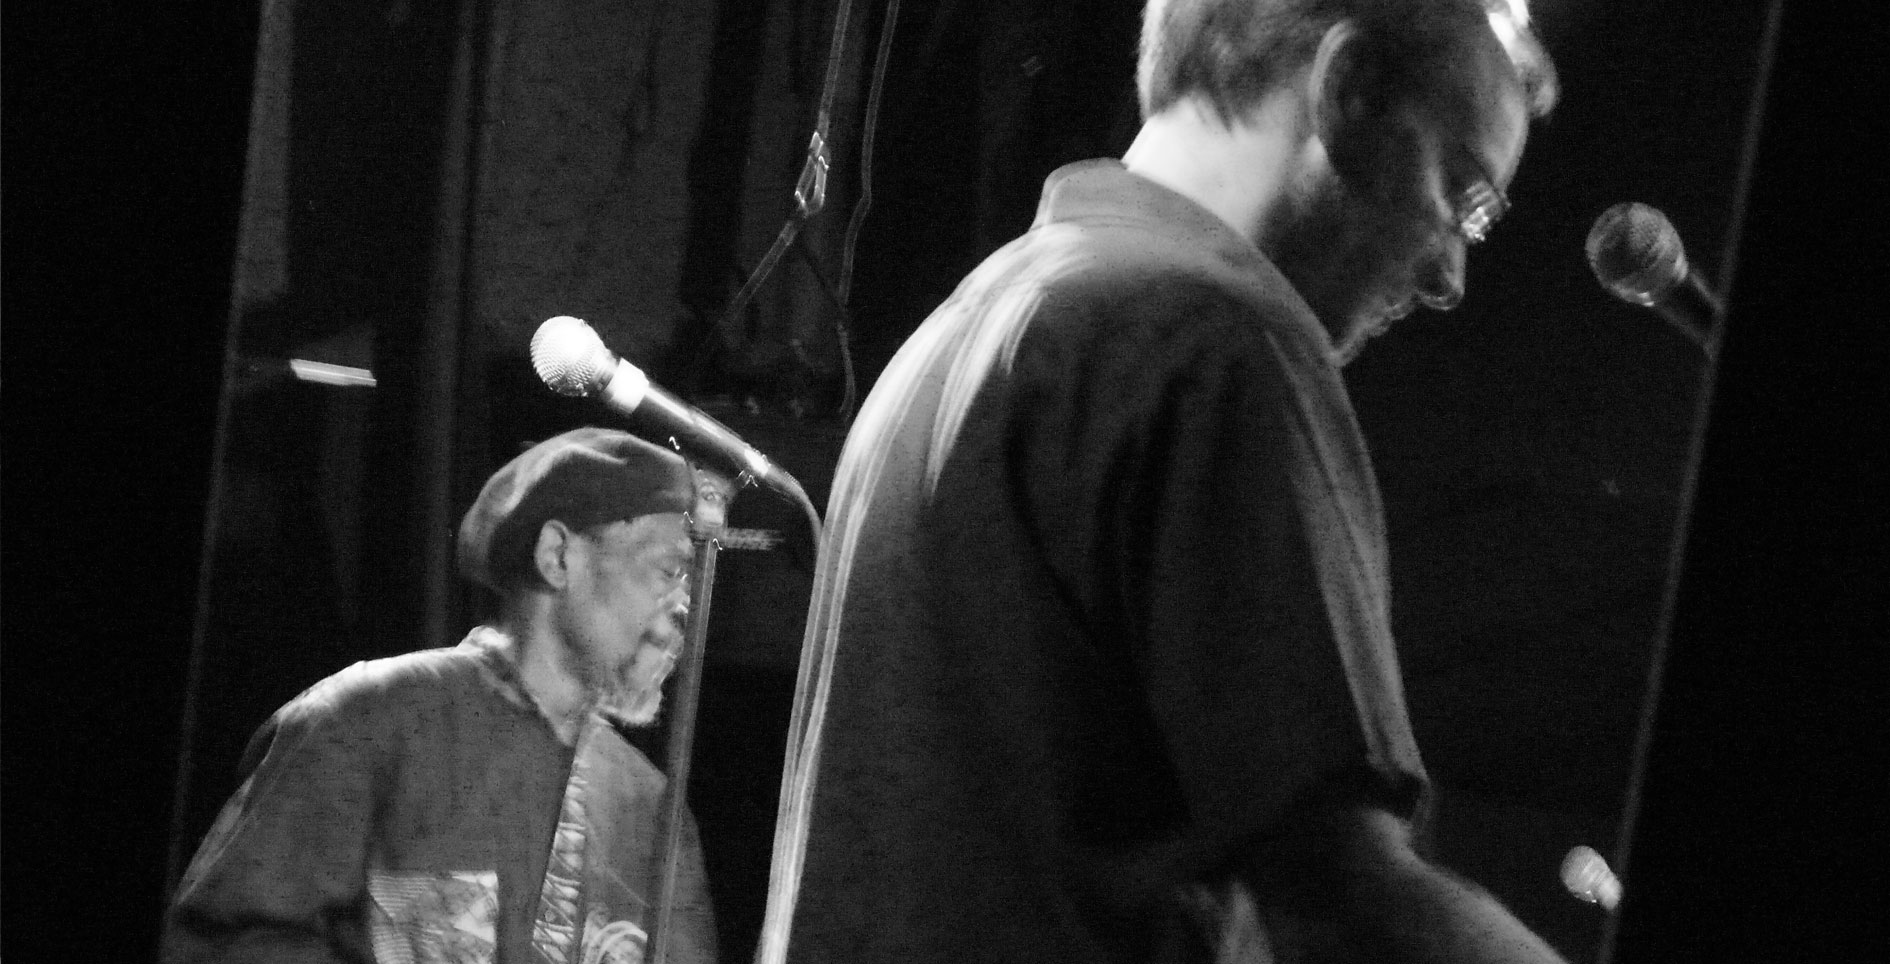 JAHCAN & PHILIRIE - Live - 21/06/2011